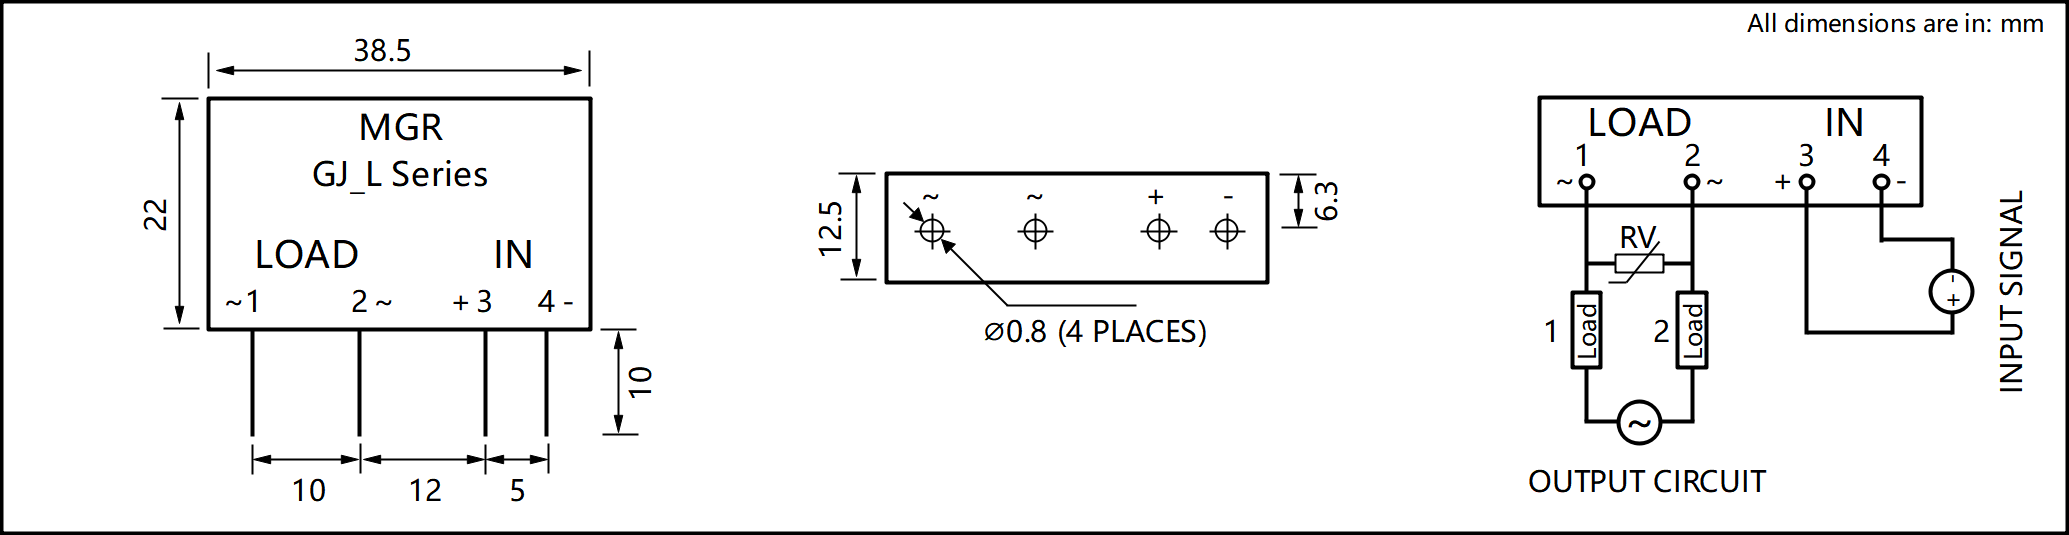 Gj L Series Dimensions And Circuit Wiring Diagram Relay Series States